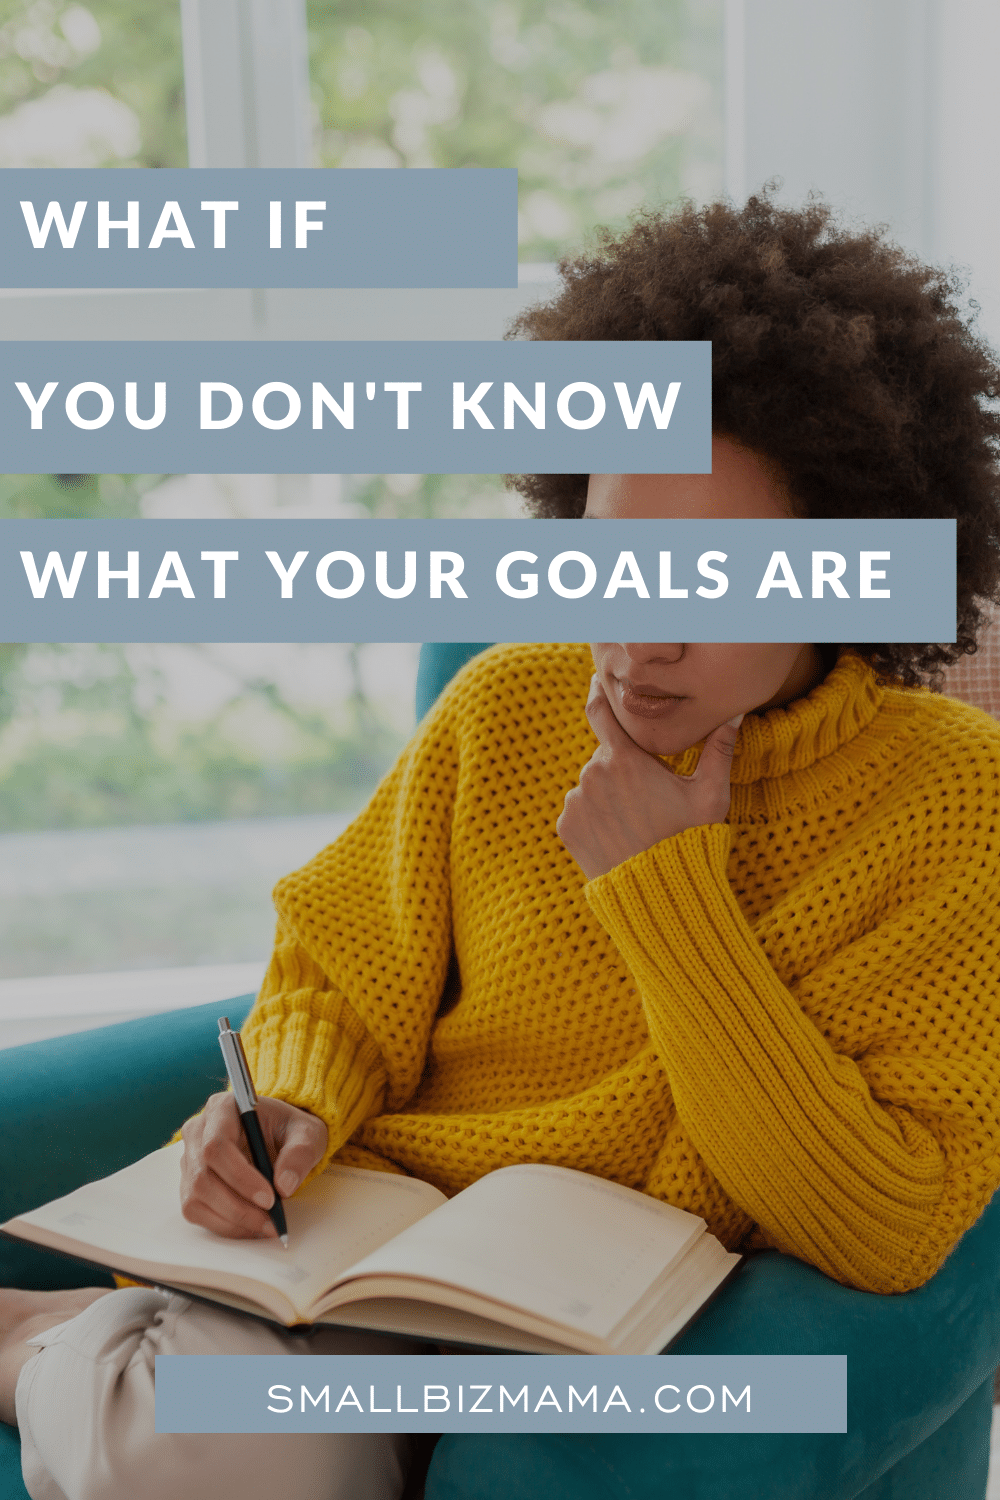 What is you don't know what your goals are